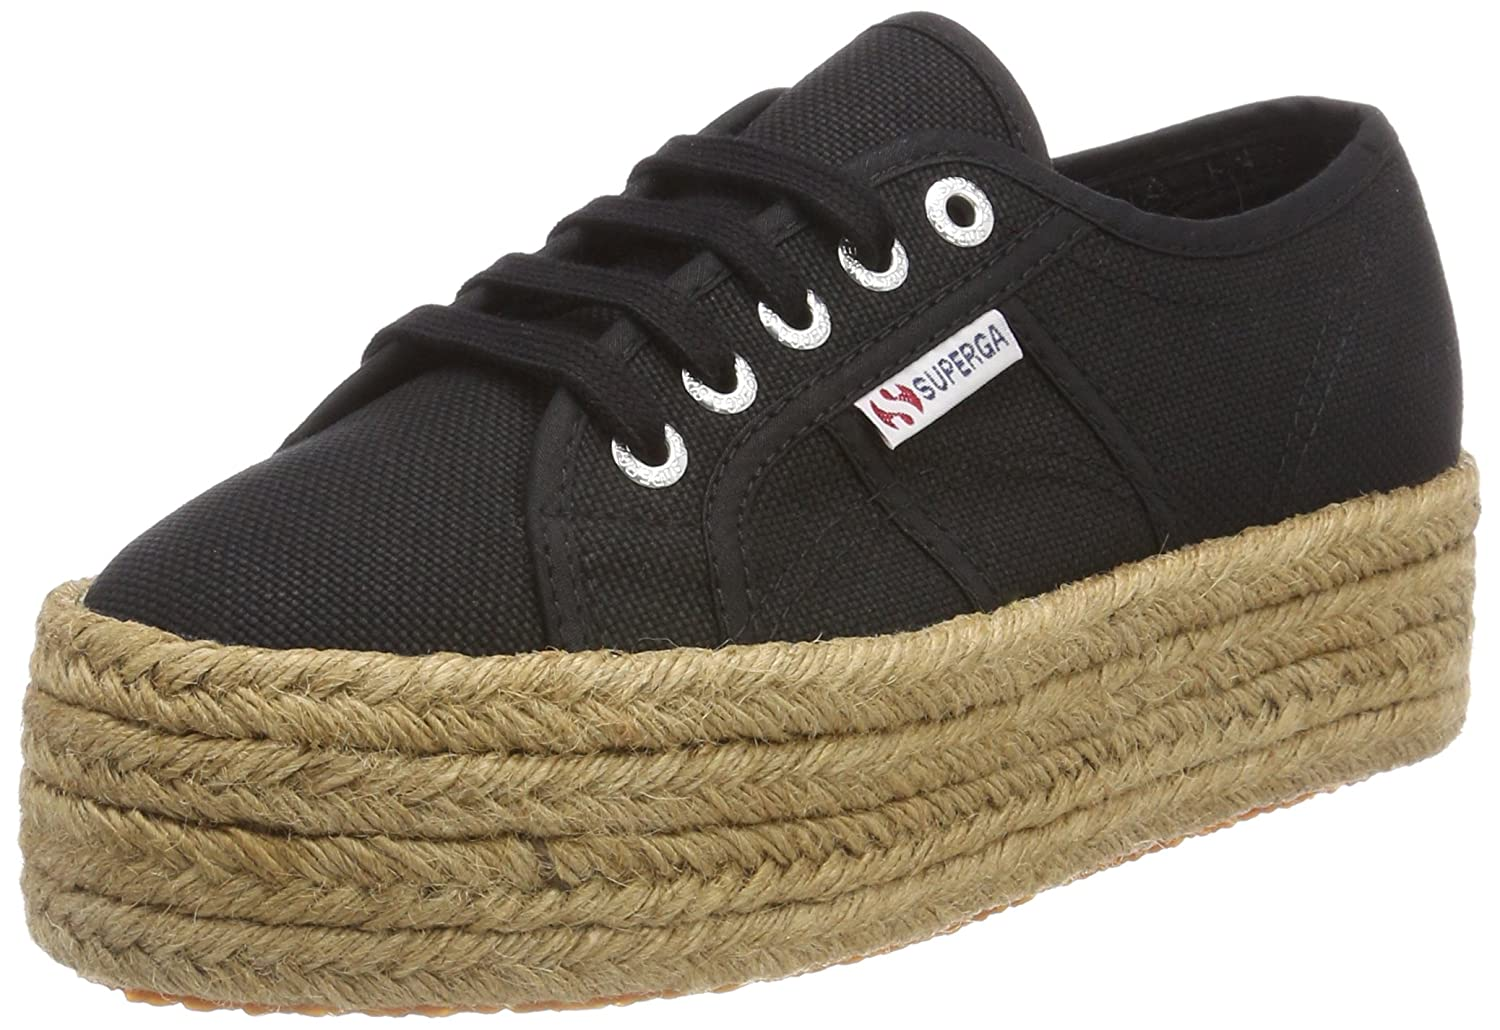 Superga Womens 2790 Cotropew Premium Canvas Trainers B017QYOHHY 6 B(M) US|Black